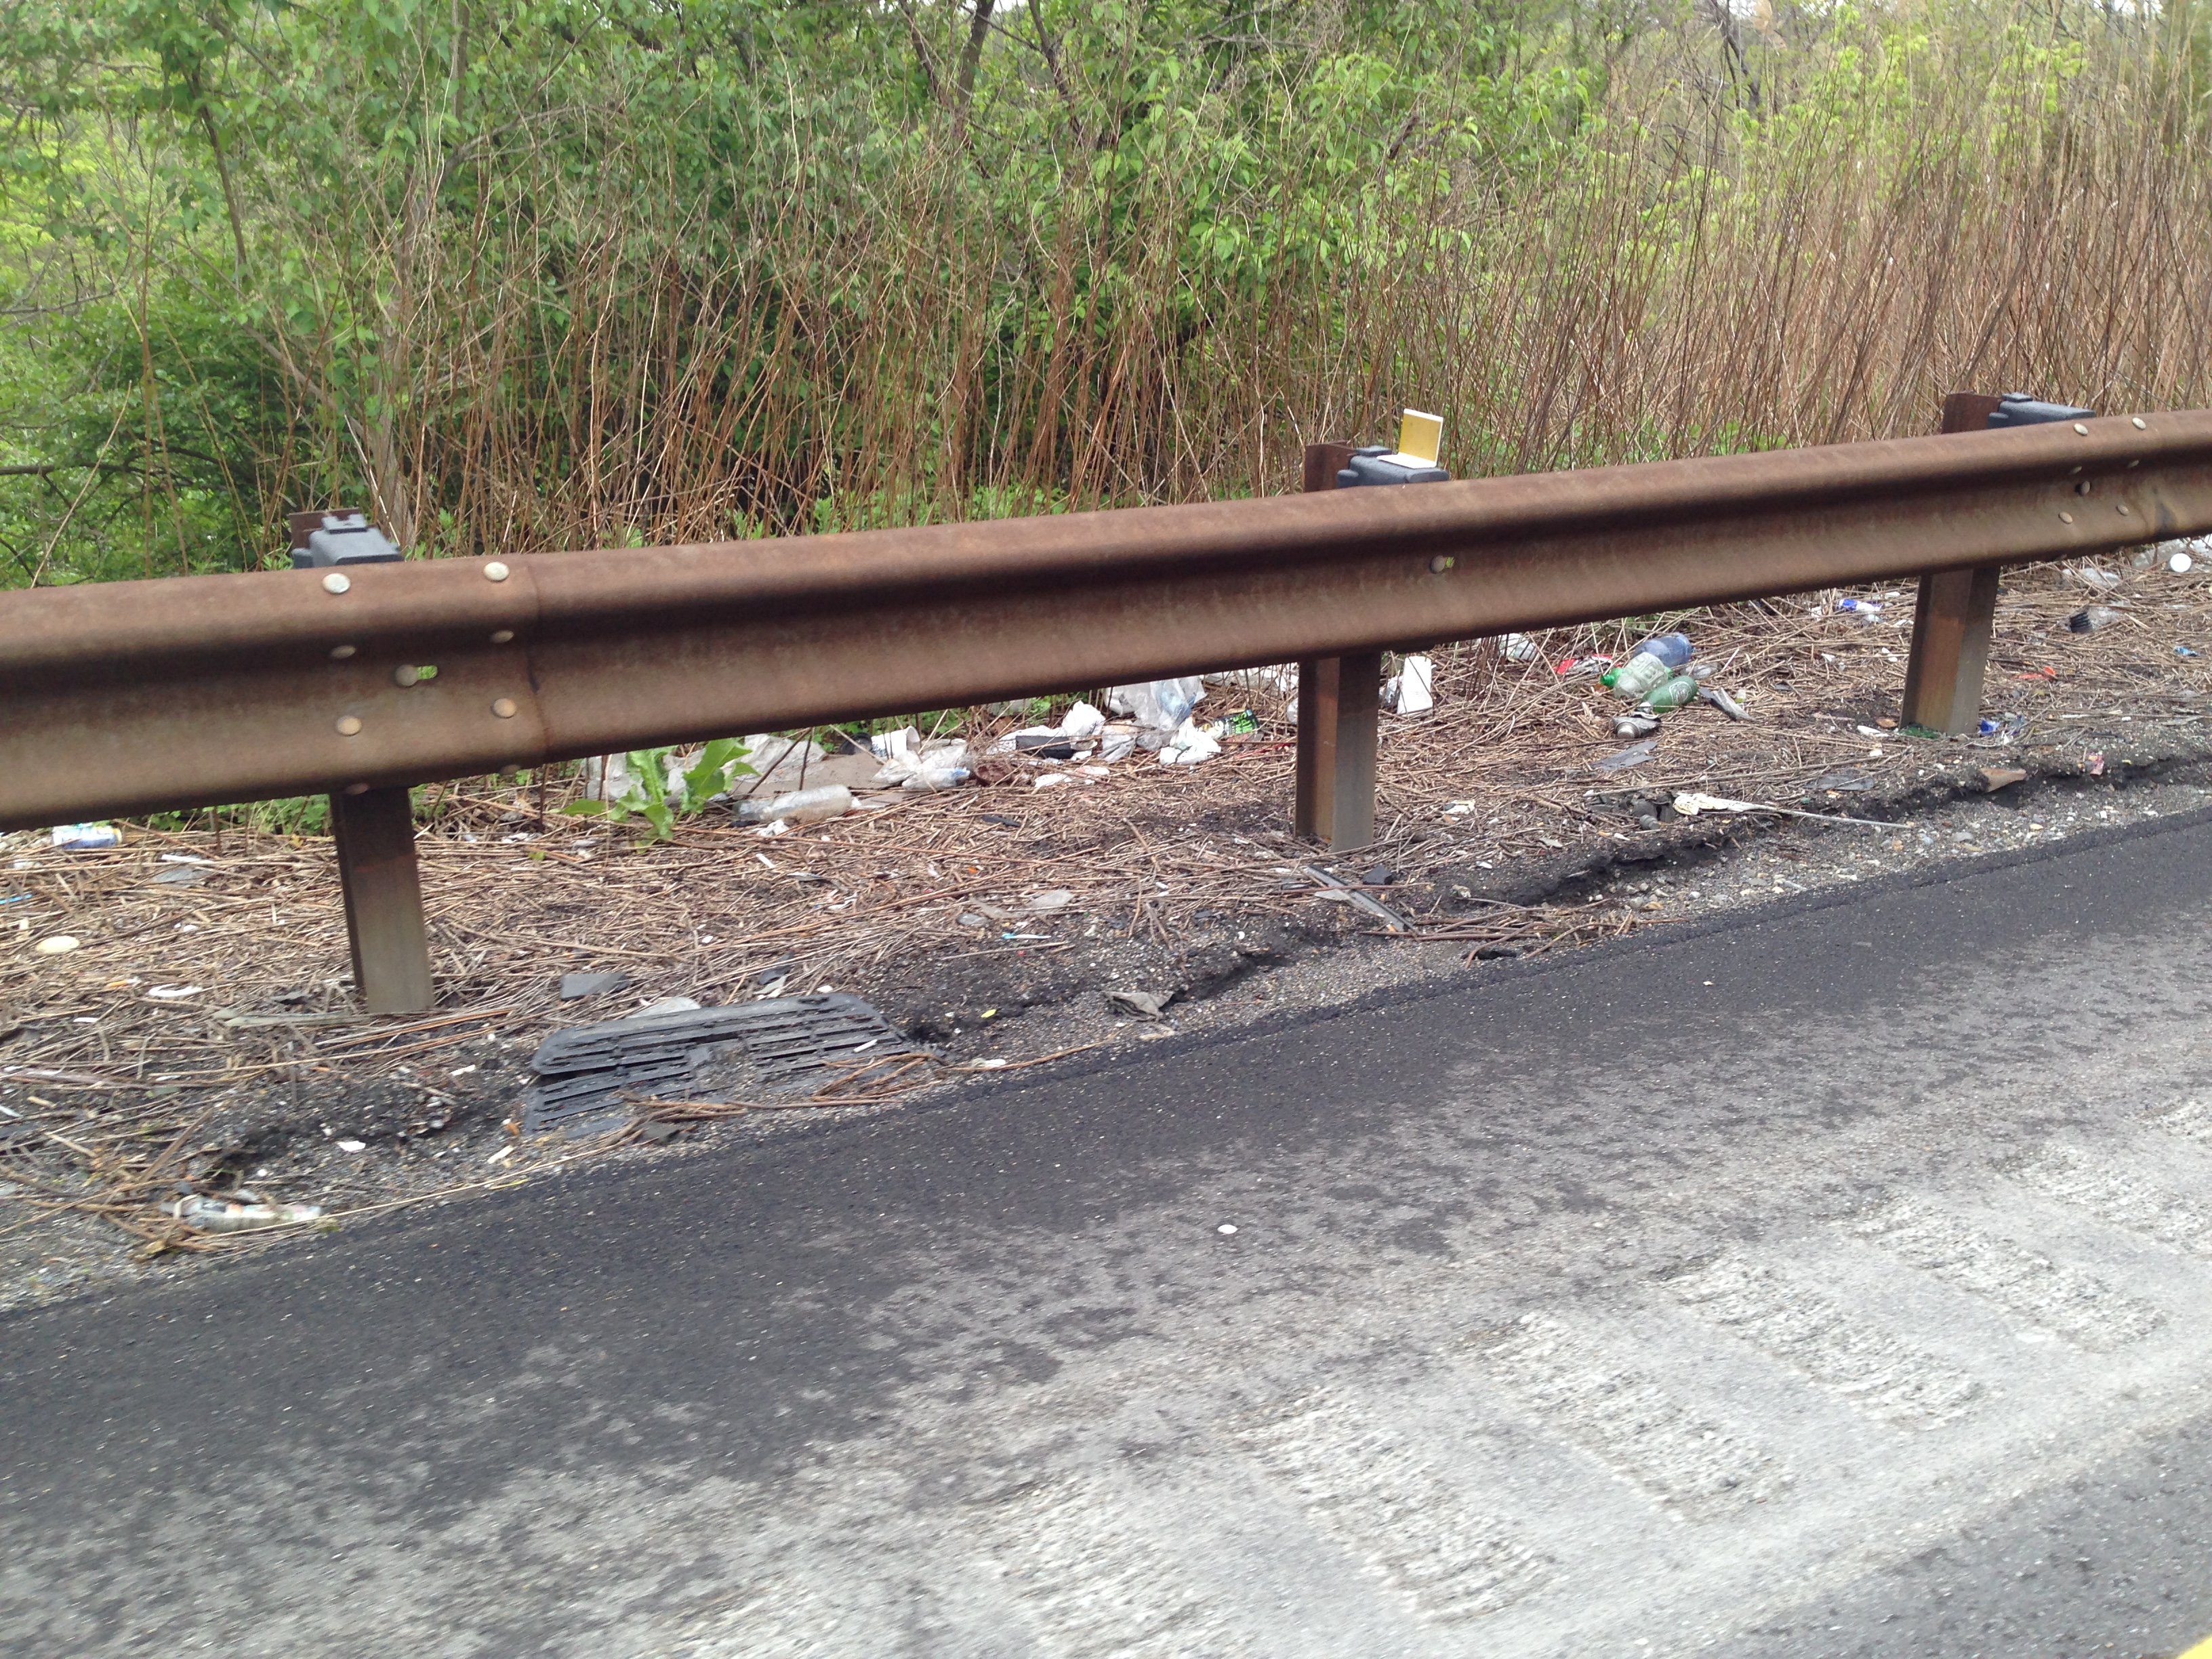 Just another day: Litter along a ramp connecting I-95 north to I-476 north.